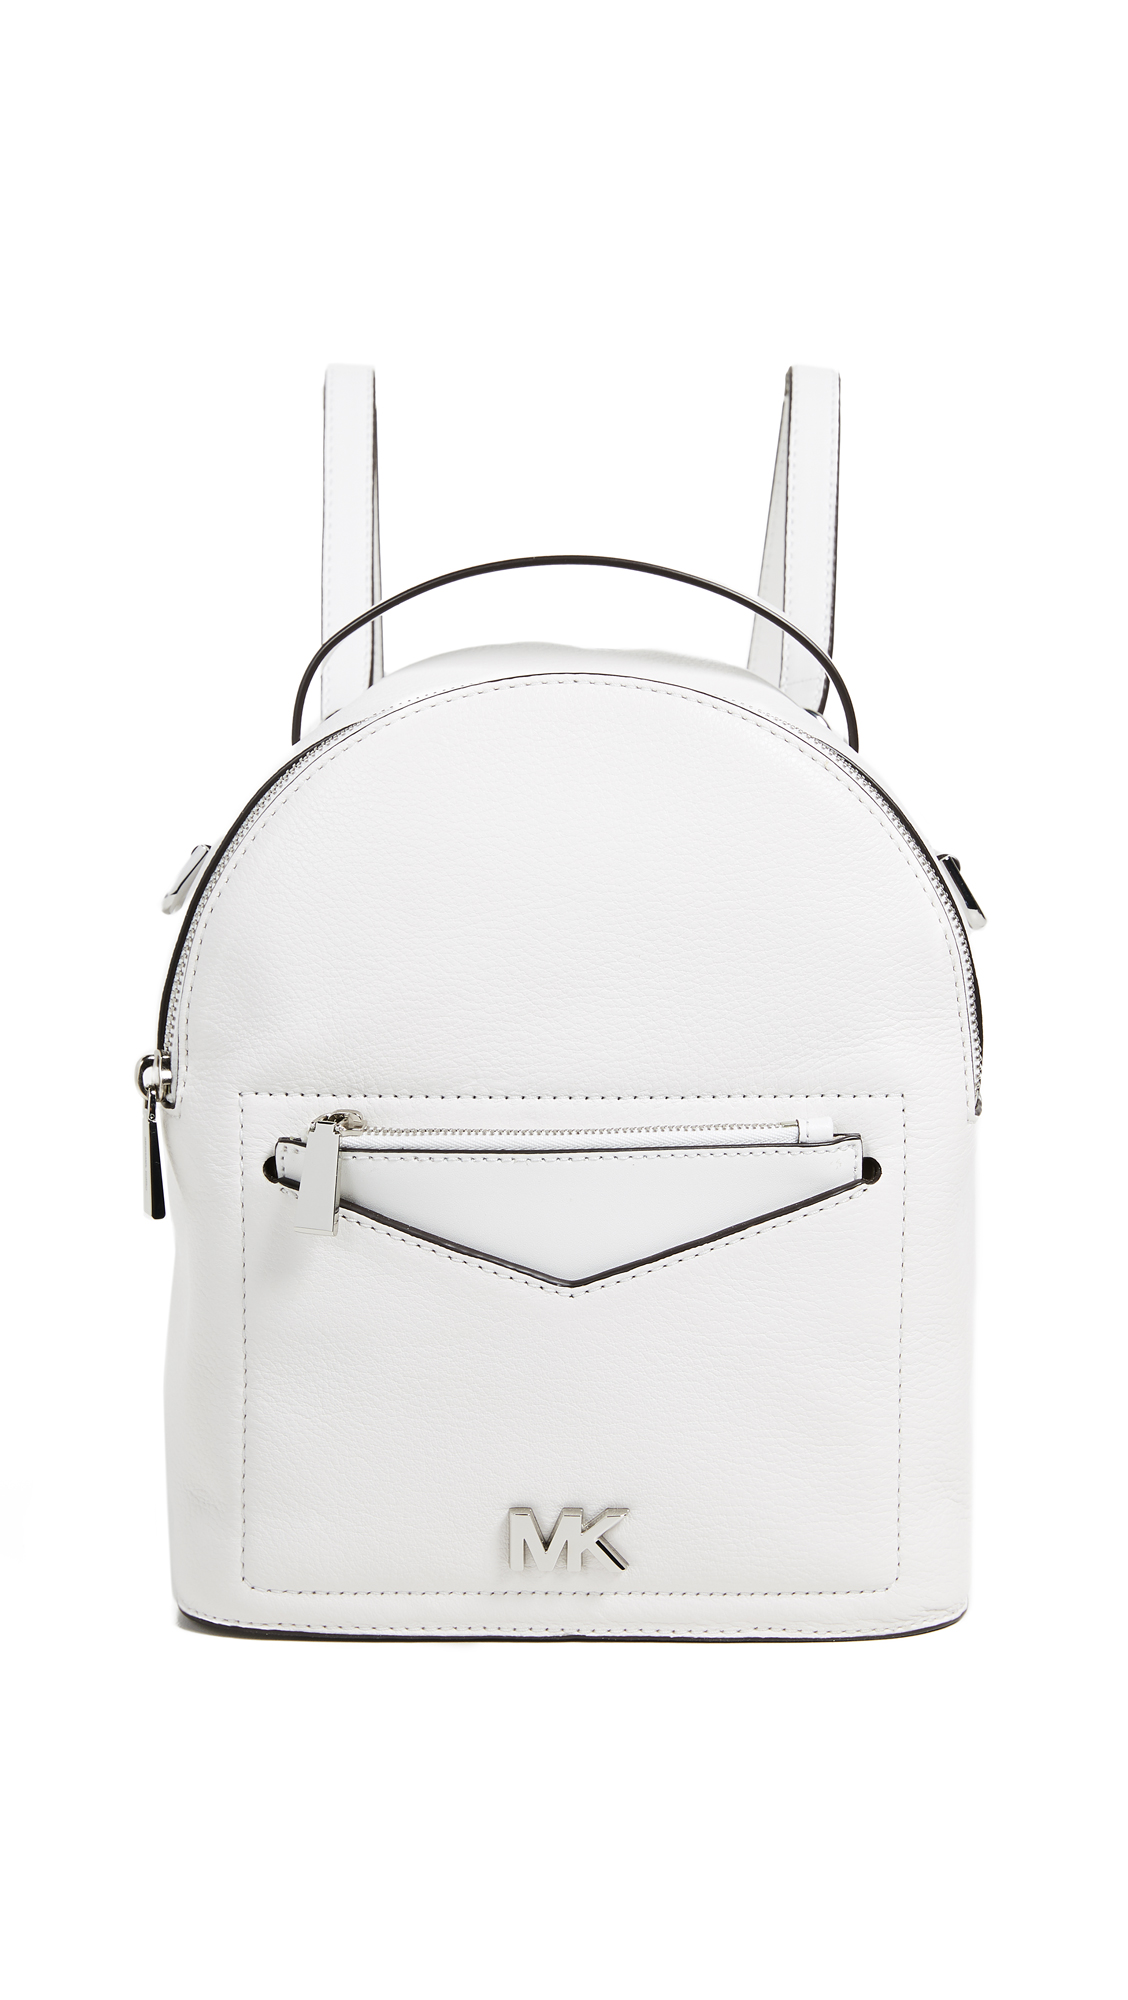 JESSA SMALL CONVERTIBLE BACKPACK from Shopbop